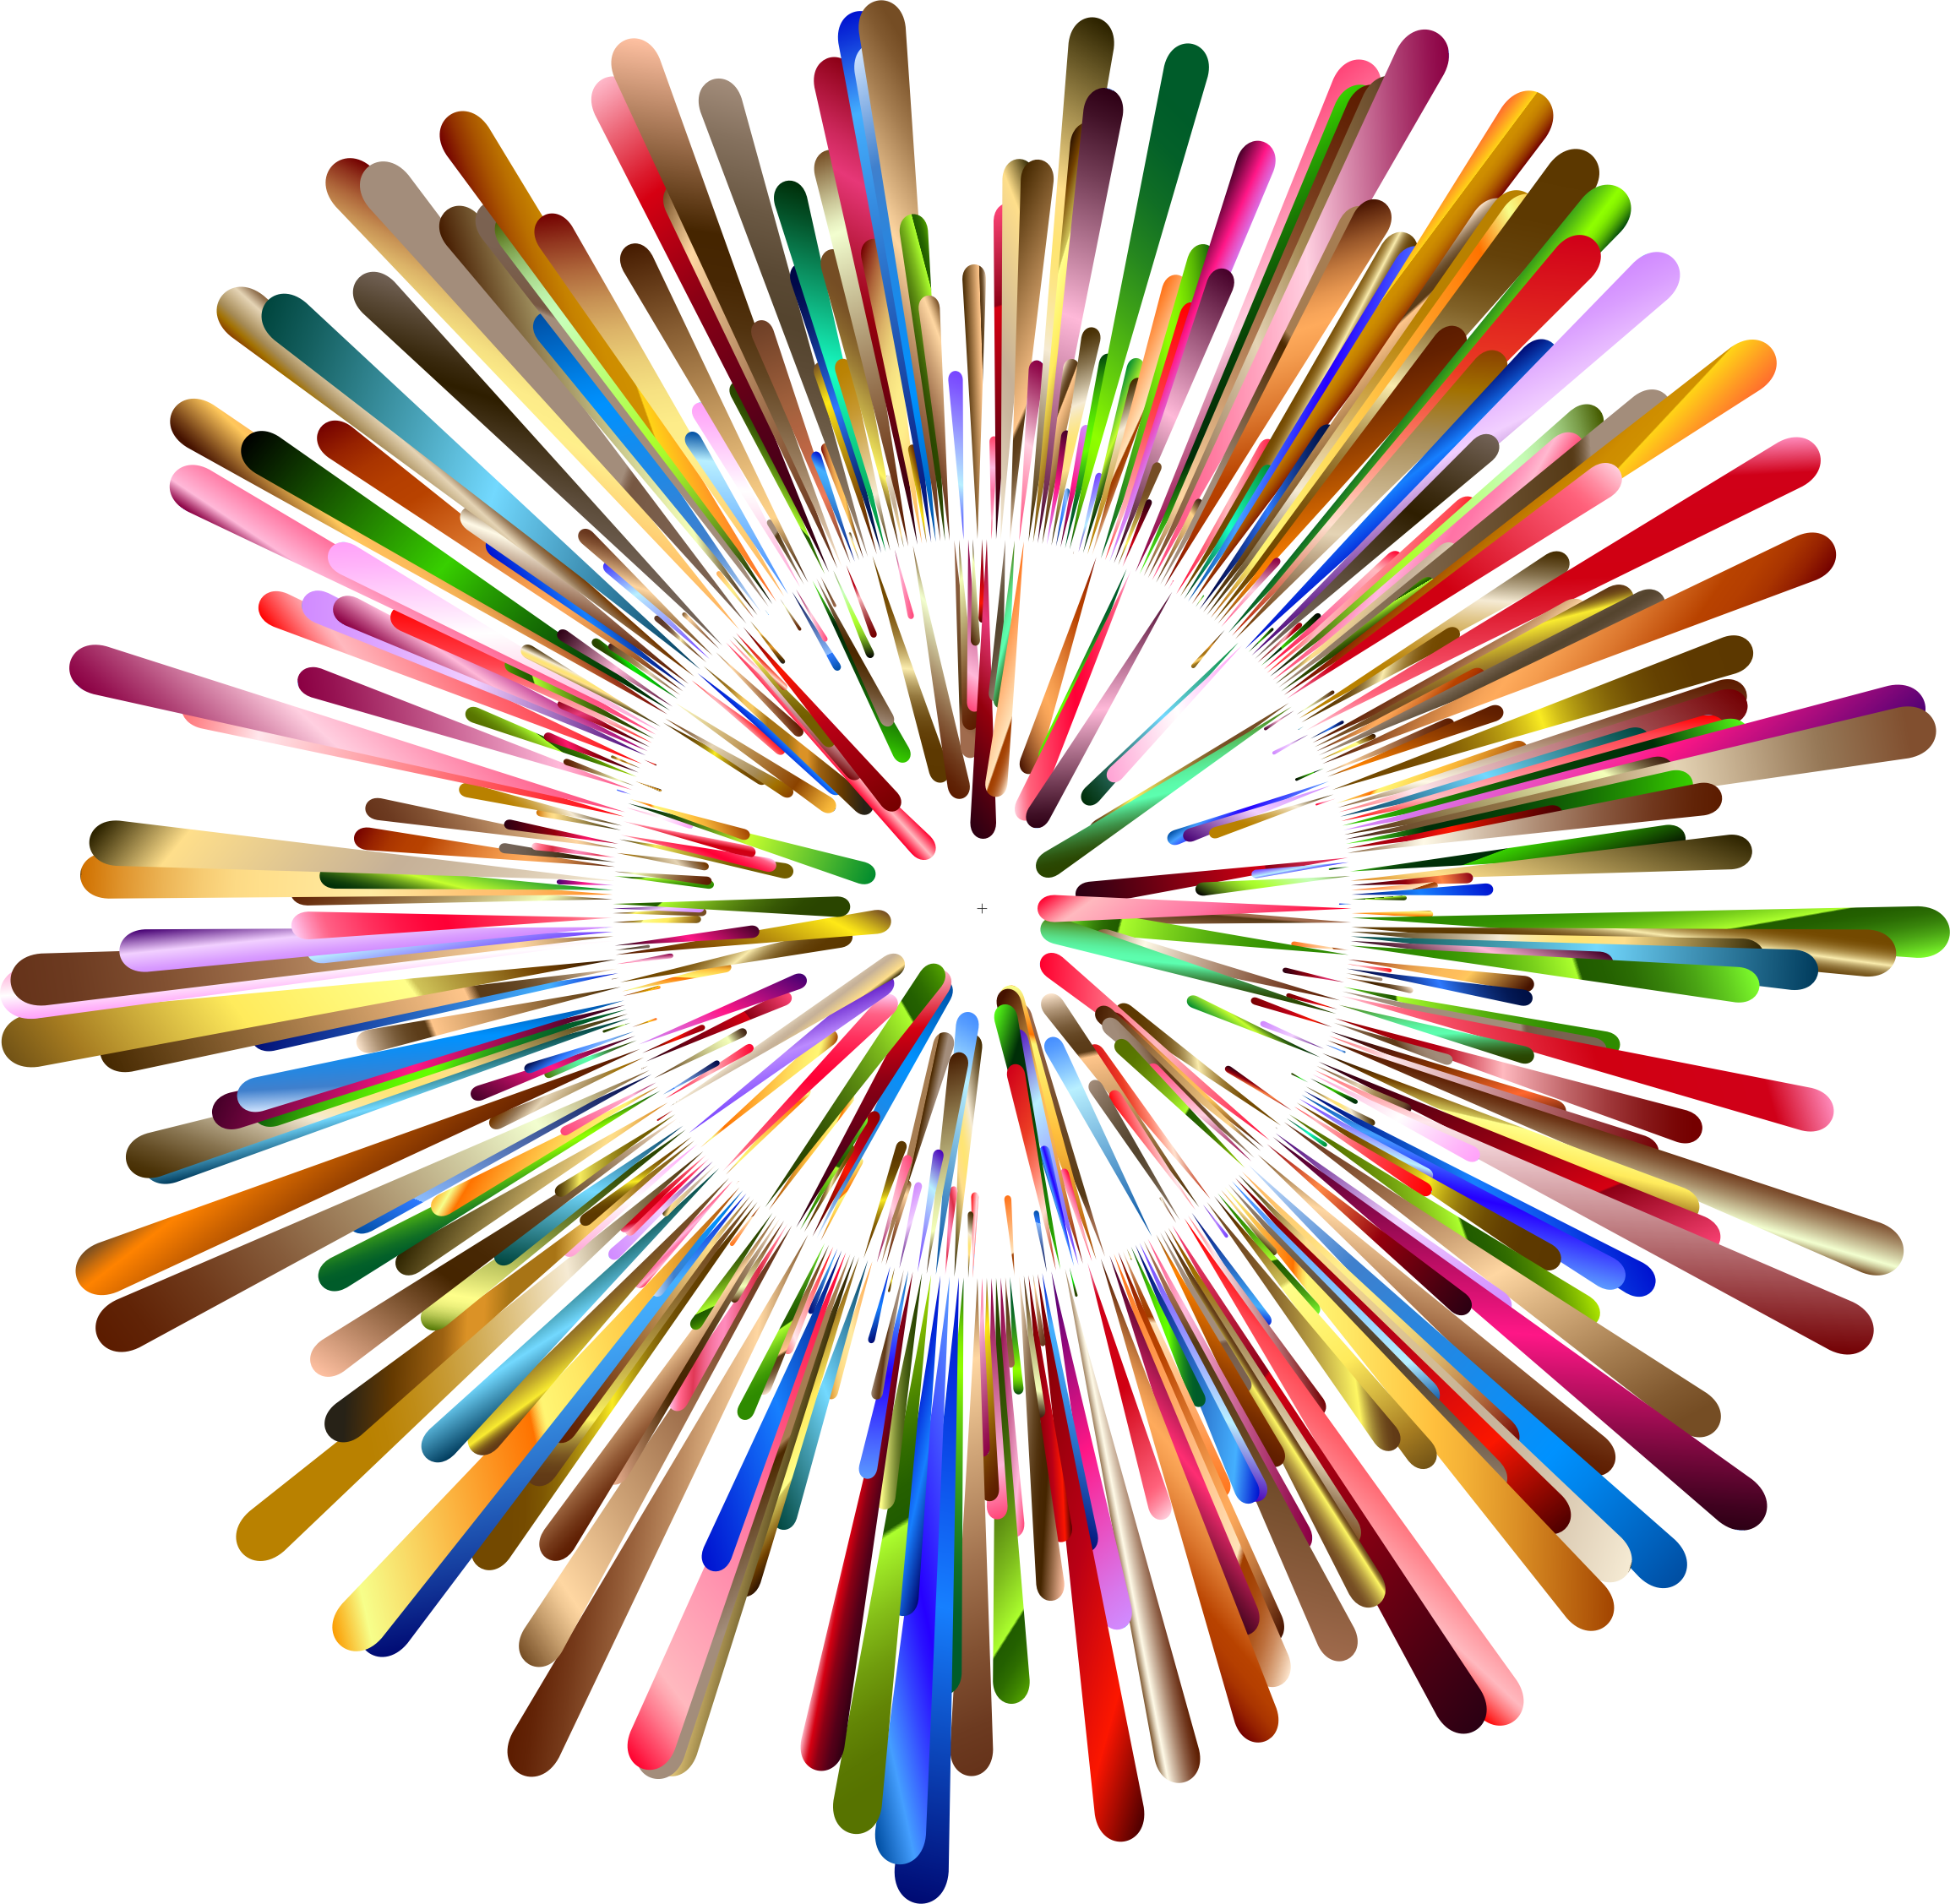 Explosion clipart colorful explosion. Multicultural no background big